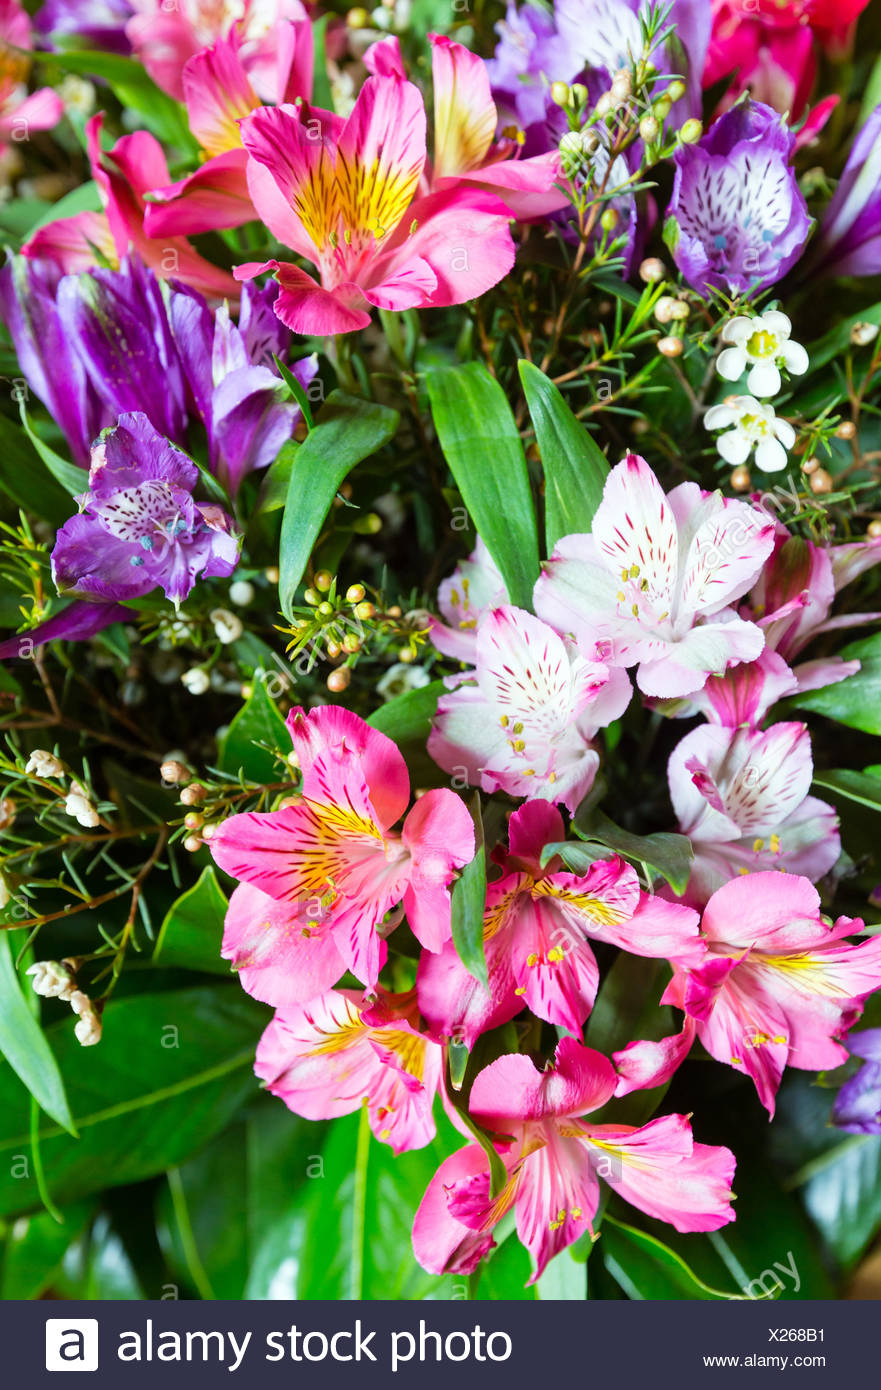 Big multicolor alstroemeria flowers bouquet stock photo 276733493 big multicolor alstroemeria flowers bouquet izmirmasajfo